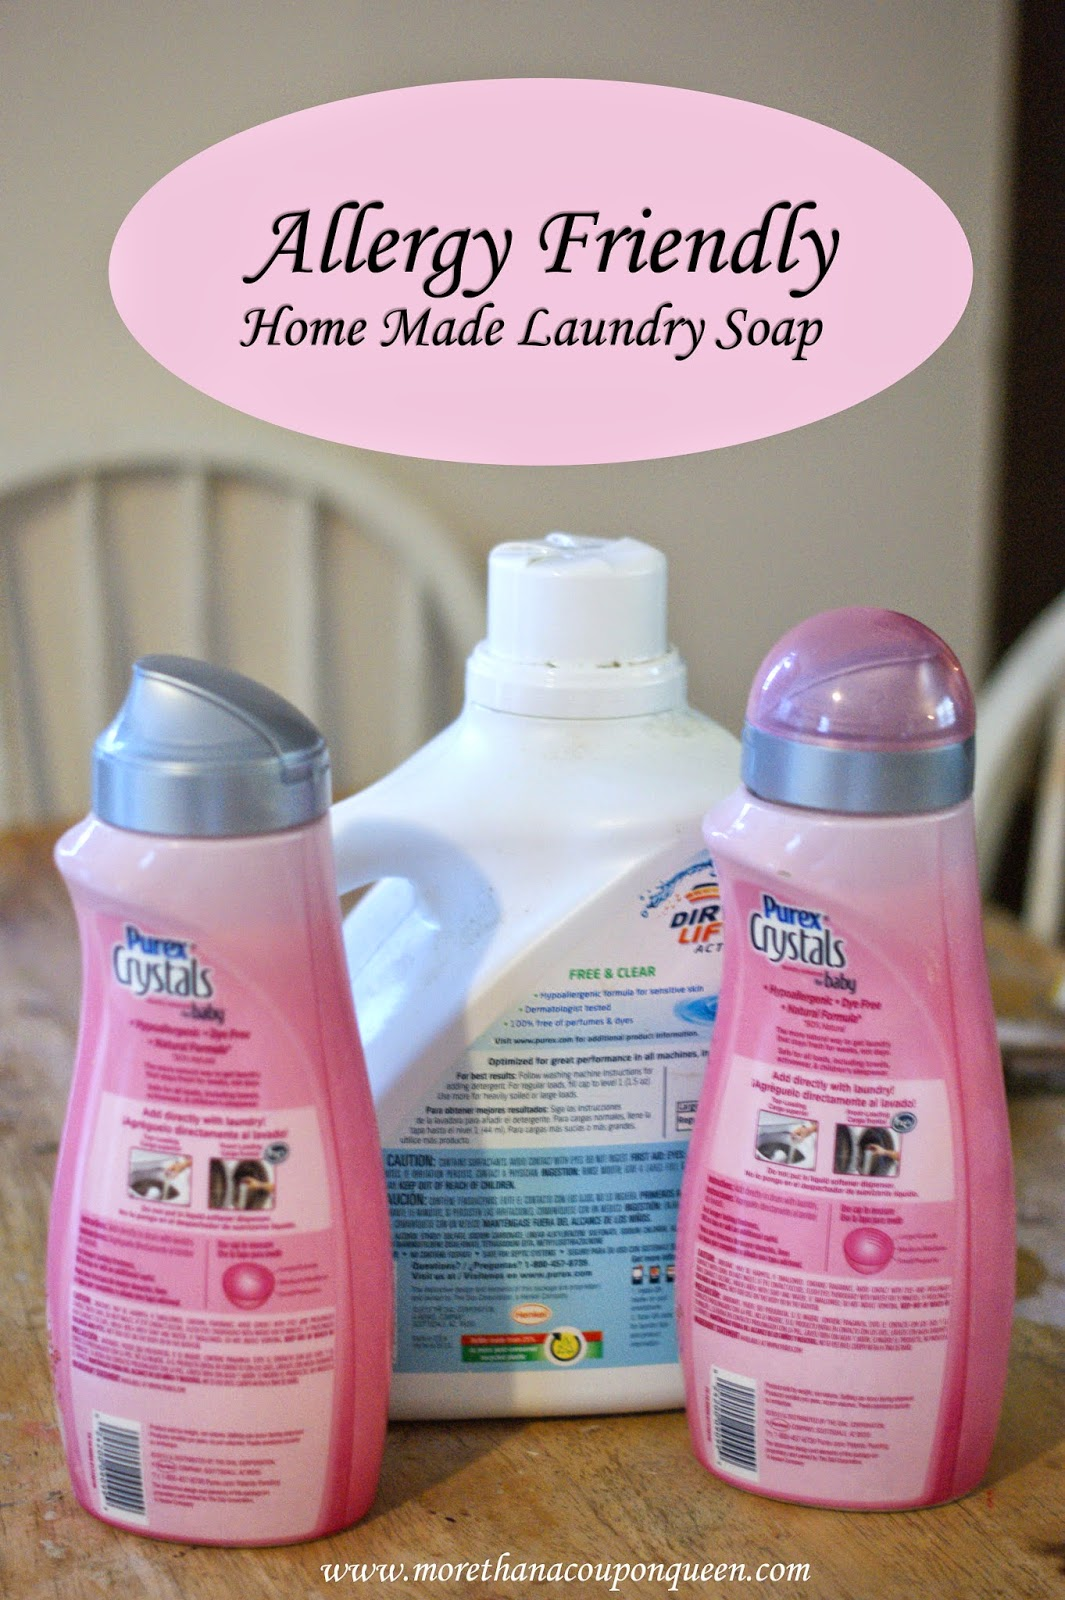 Allergy Friendly Home Made Laundry Soap